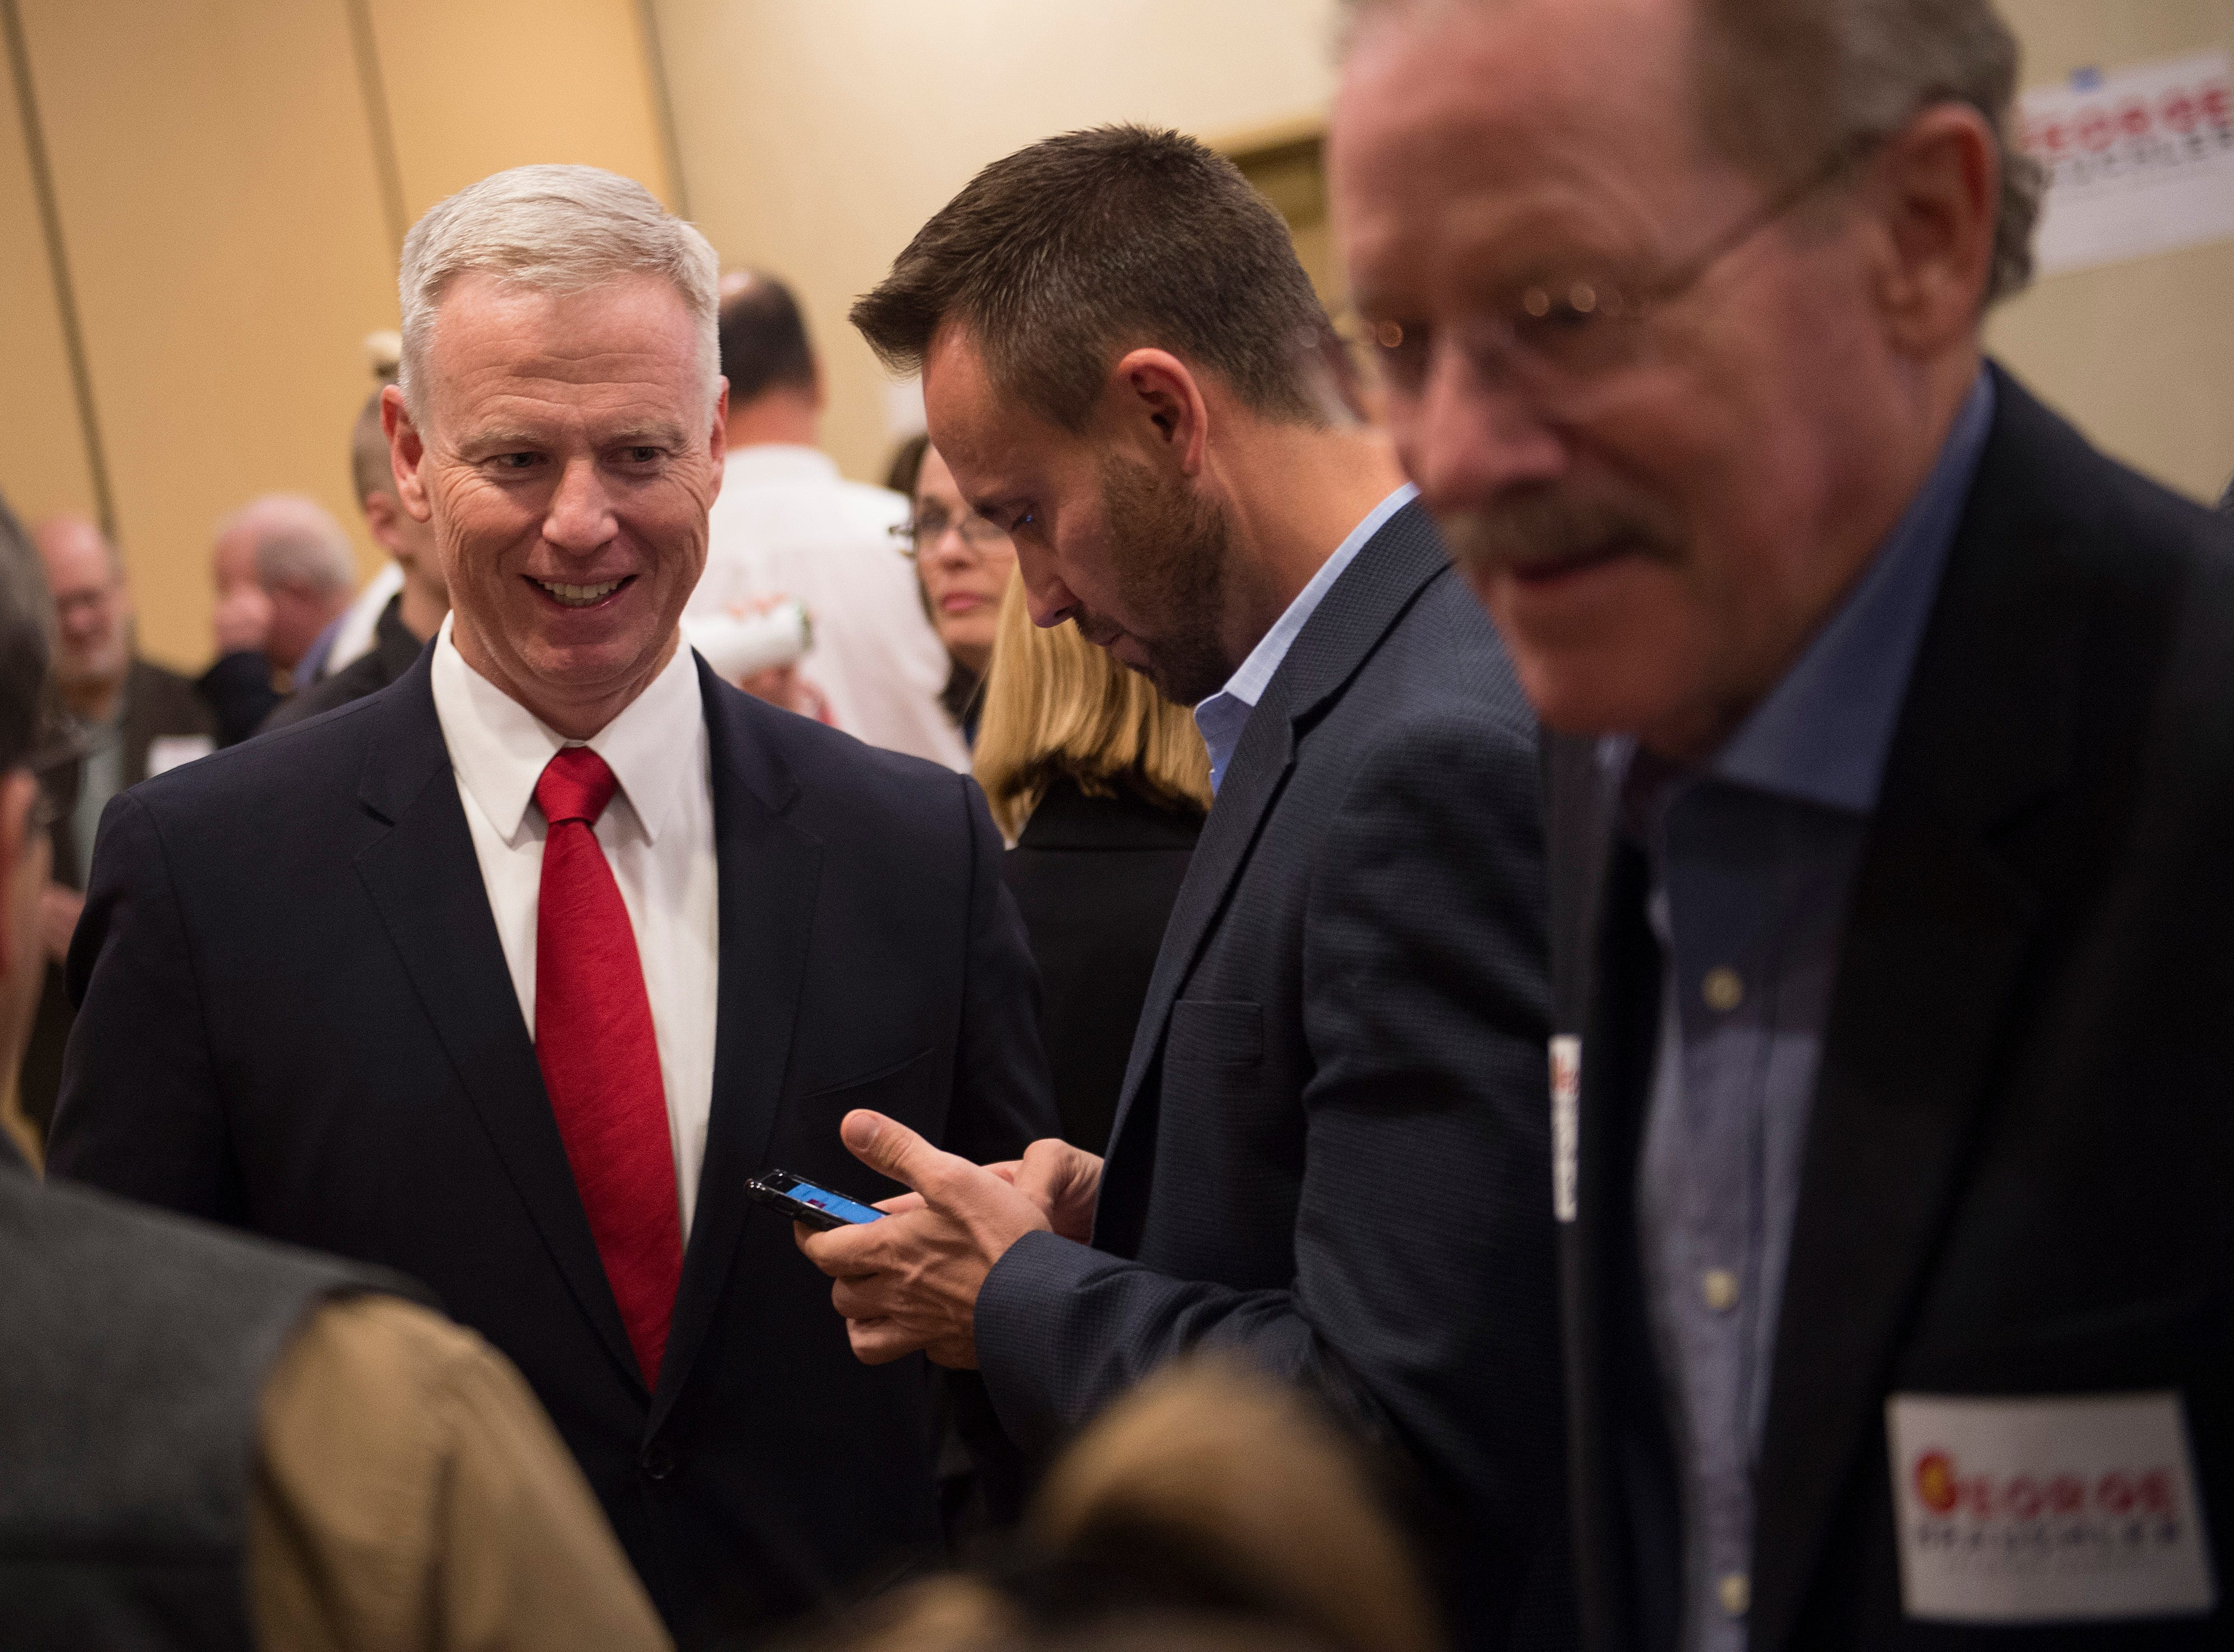 Colorado attorney general candidate George Brauchler talks with supporters during a Colorado GOP watch party at the Denver Marriott South at Park Meadows in Lone Tree on Election Day, Tuesday, November 6, 2018.